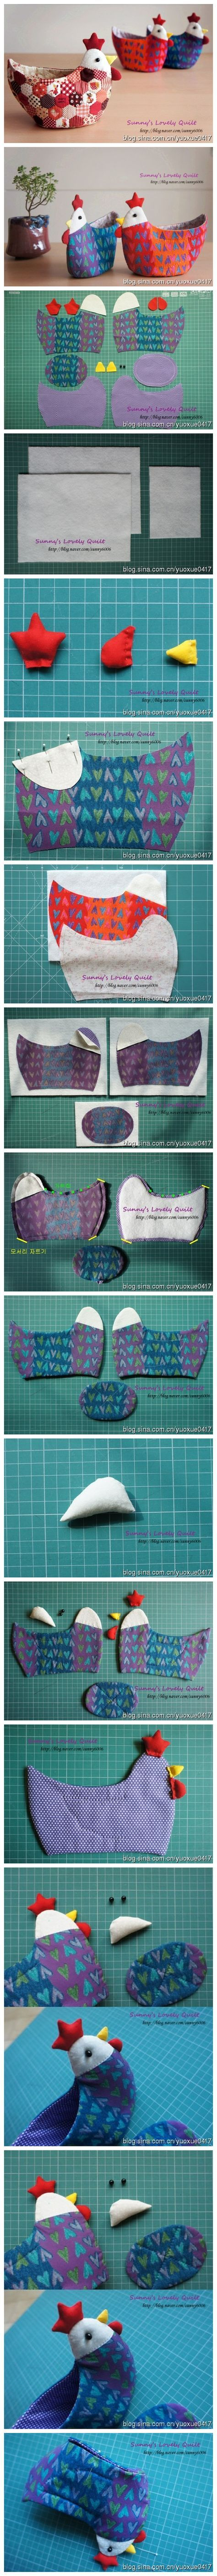 Tutorial on how to make a chicken-shaped patchwork bowl Fabric Crafts, Sewing Crafts, Sewing Projects, Diy Crafts, Diy Projects, Sewing Hacks, Sewing Tutorials, Sewing Patterns, Online Tutorials